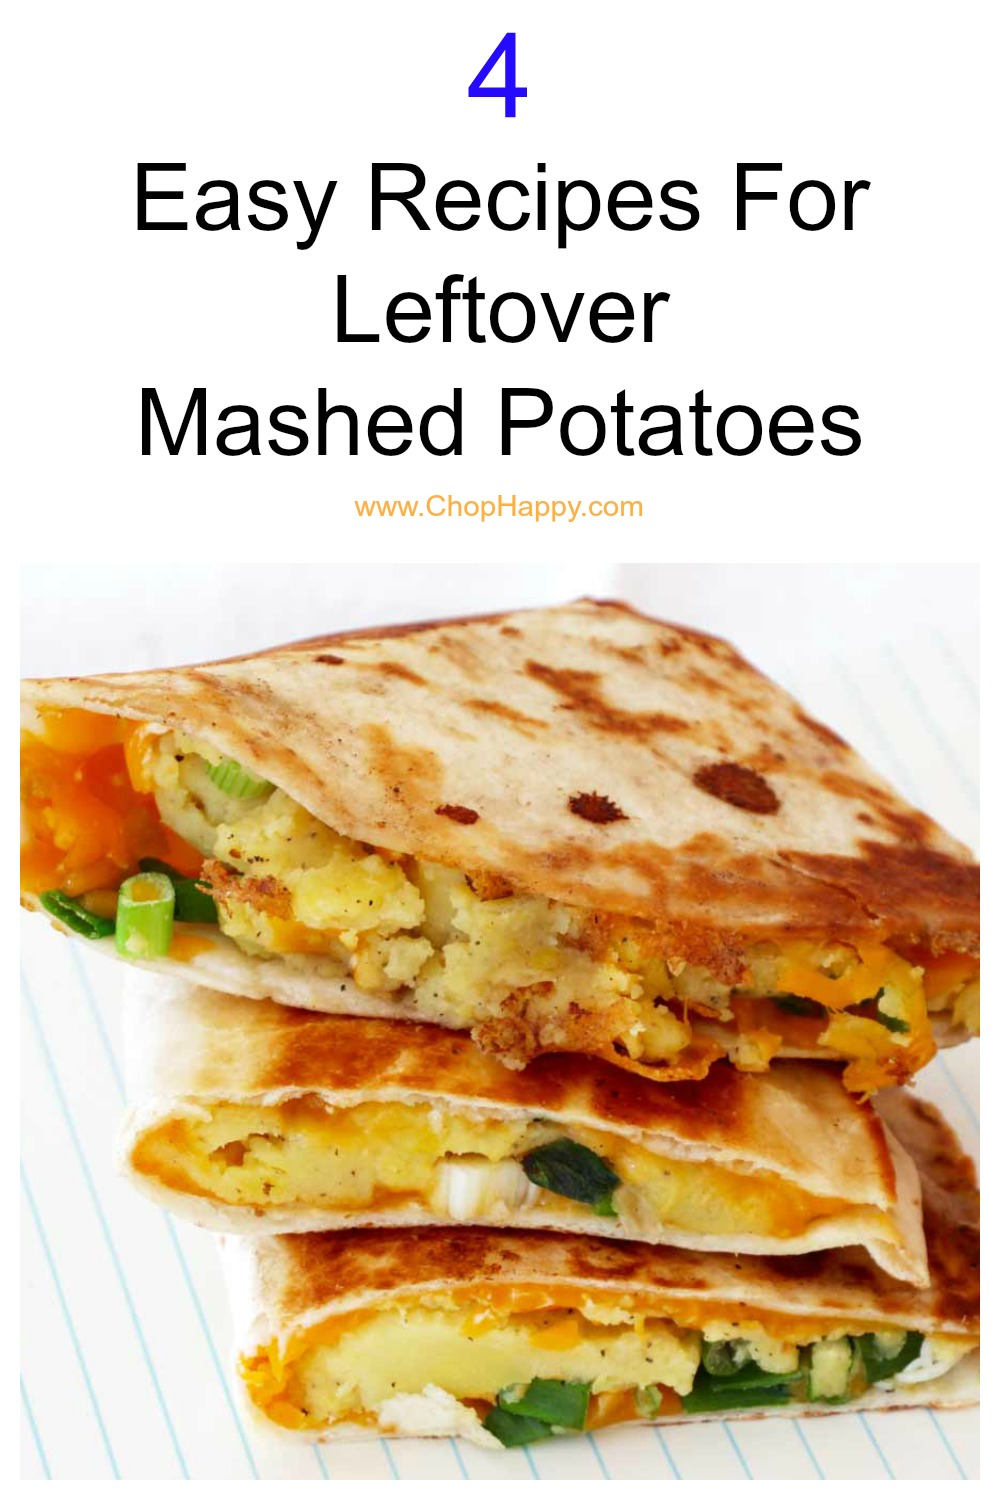 4 Easy Recipes For Leftover Mashed Potatoes. Quesadillas,lasagna, and casserole recipes. Happy Mashed Potato Cooking! www.ChopHappy.com #mashedpotatoes #leftovers